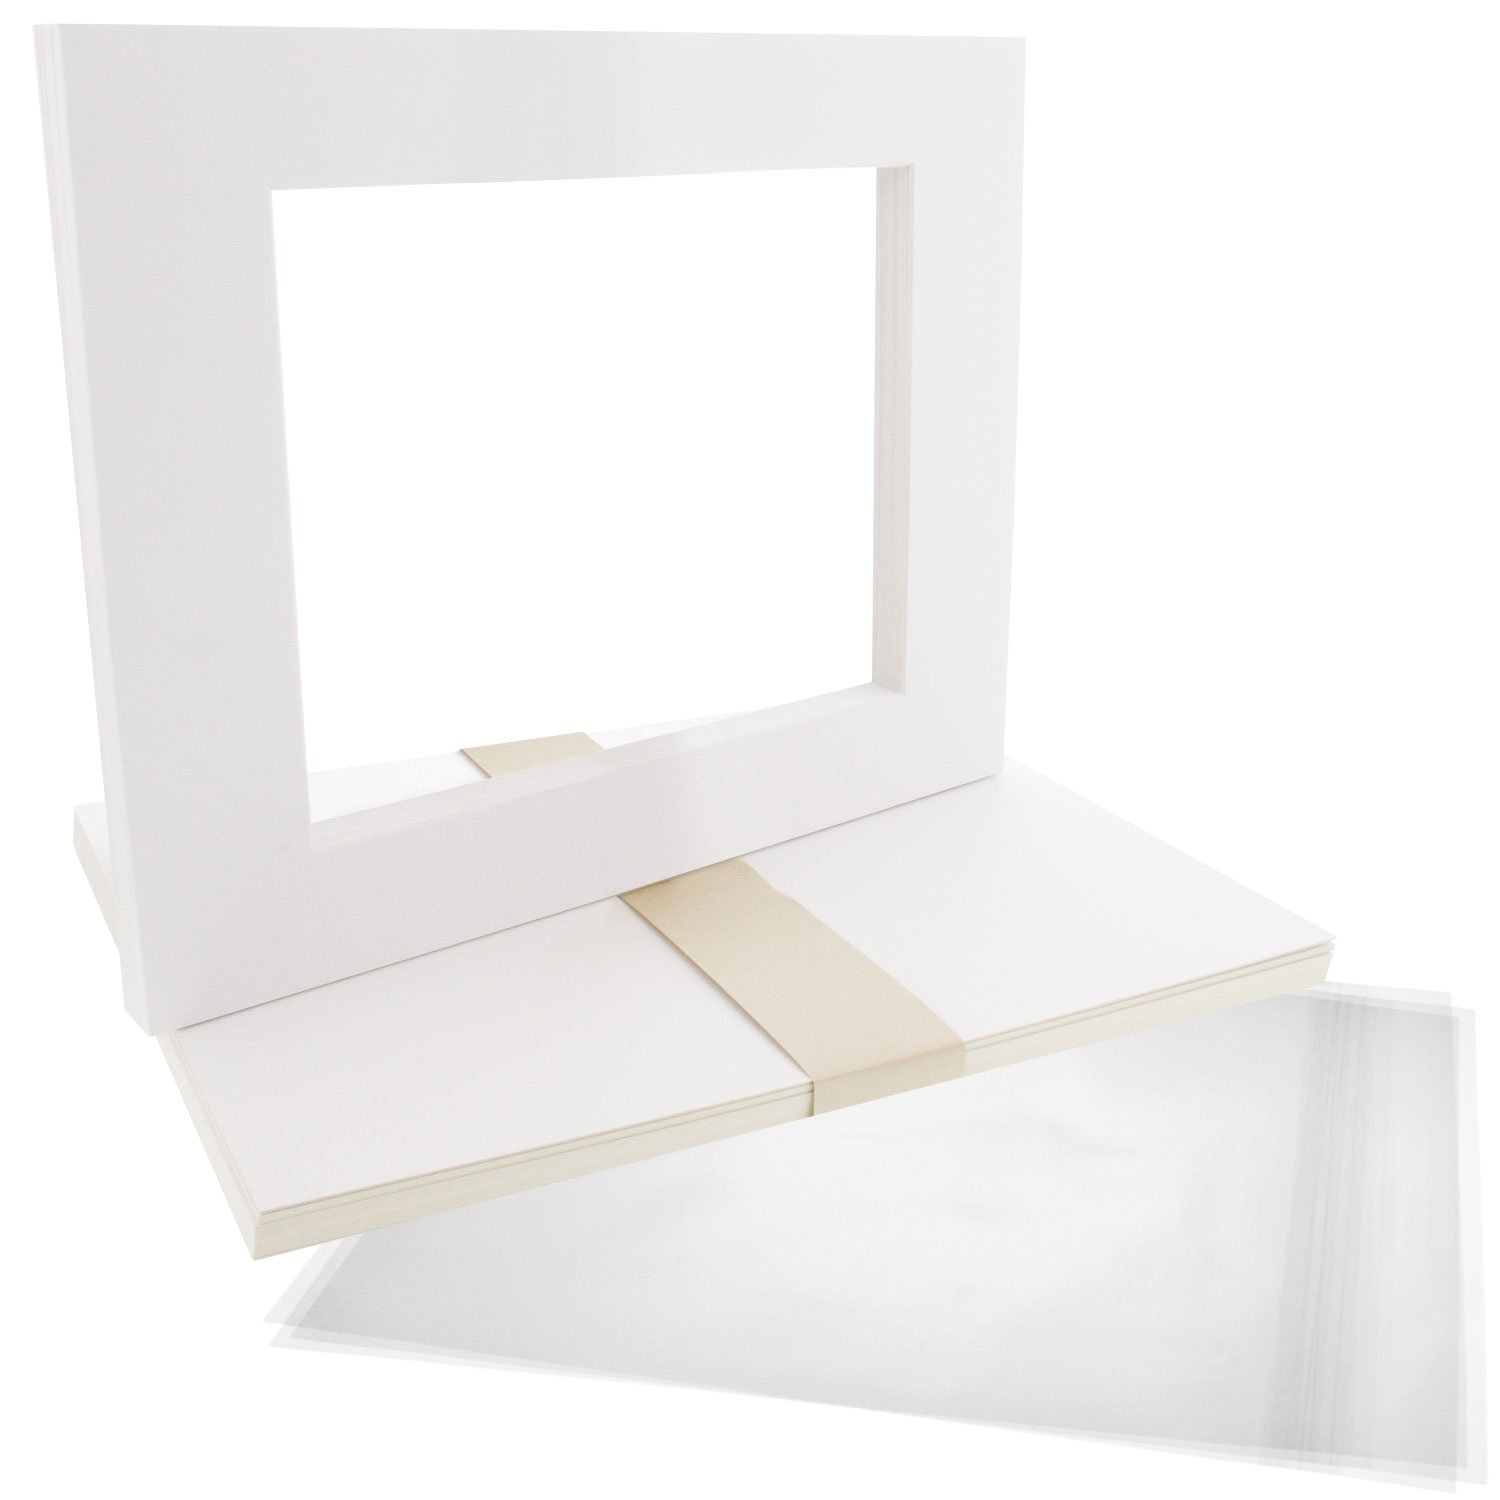 US Art Supply Art Mats Acid-Free Pre-Cut 16X20 White Picture Mat Matte Sets. Includes a Pack of 10 White Core Bevel Cut Mattes for 11X14 Photos, Pack of 10 Backers & 10 Clear Sleeve Bags